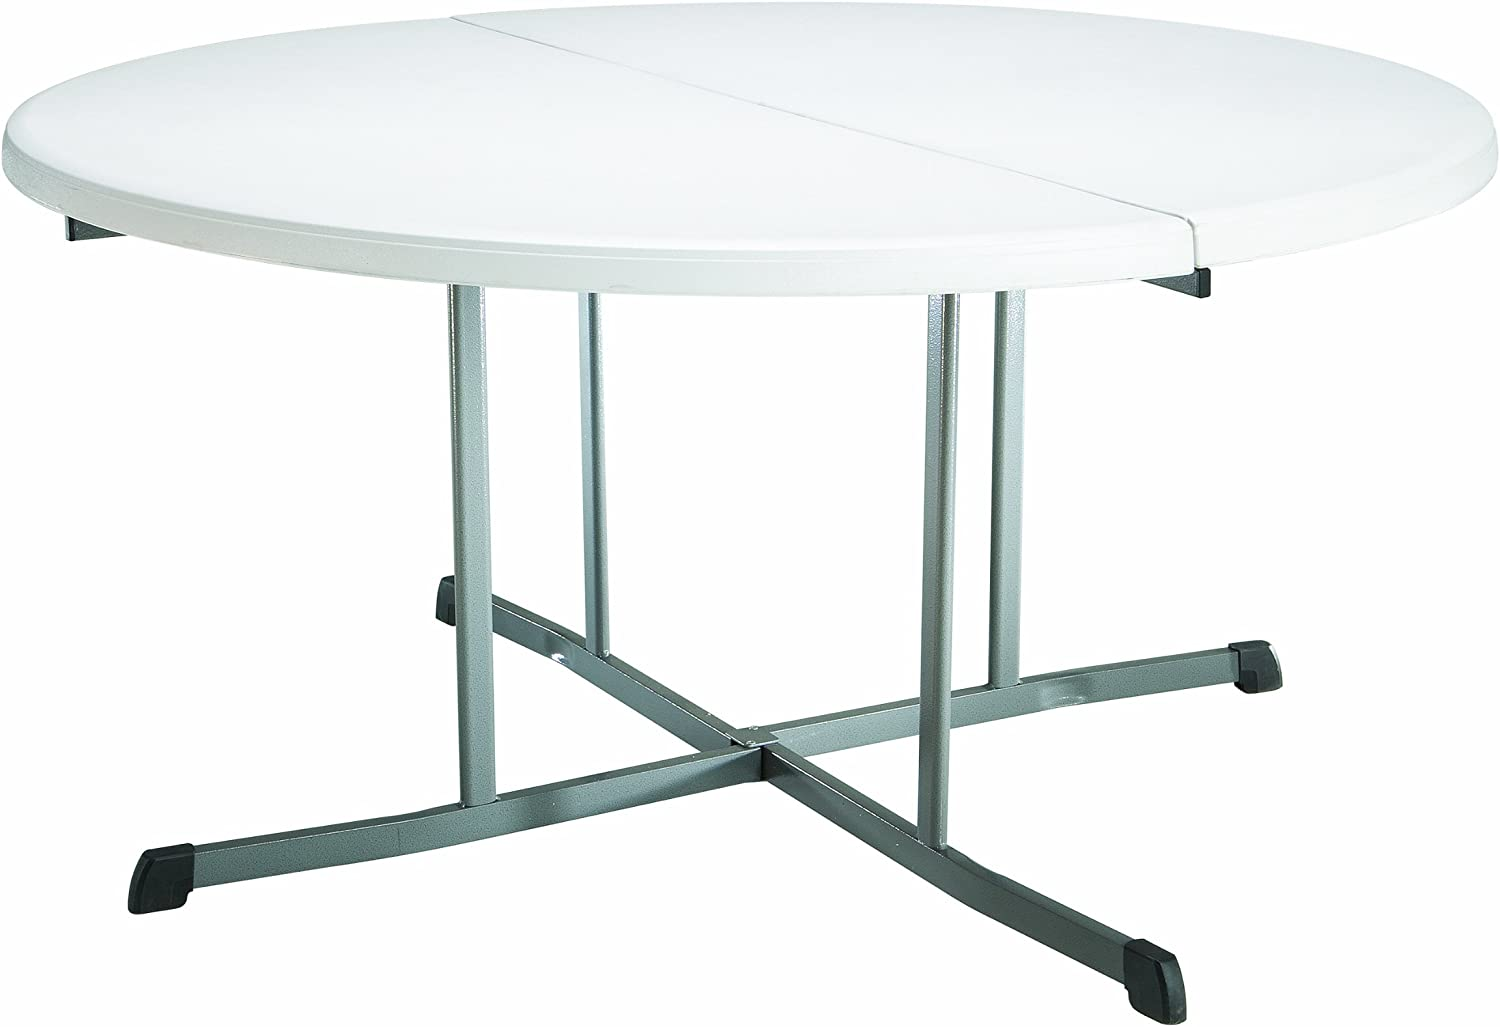 - Amazon.com : Lifetime 25402 Commercial Round Fold In Half Table, 5